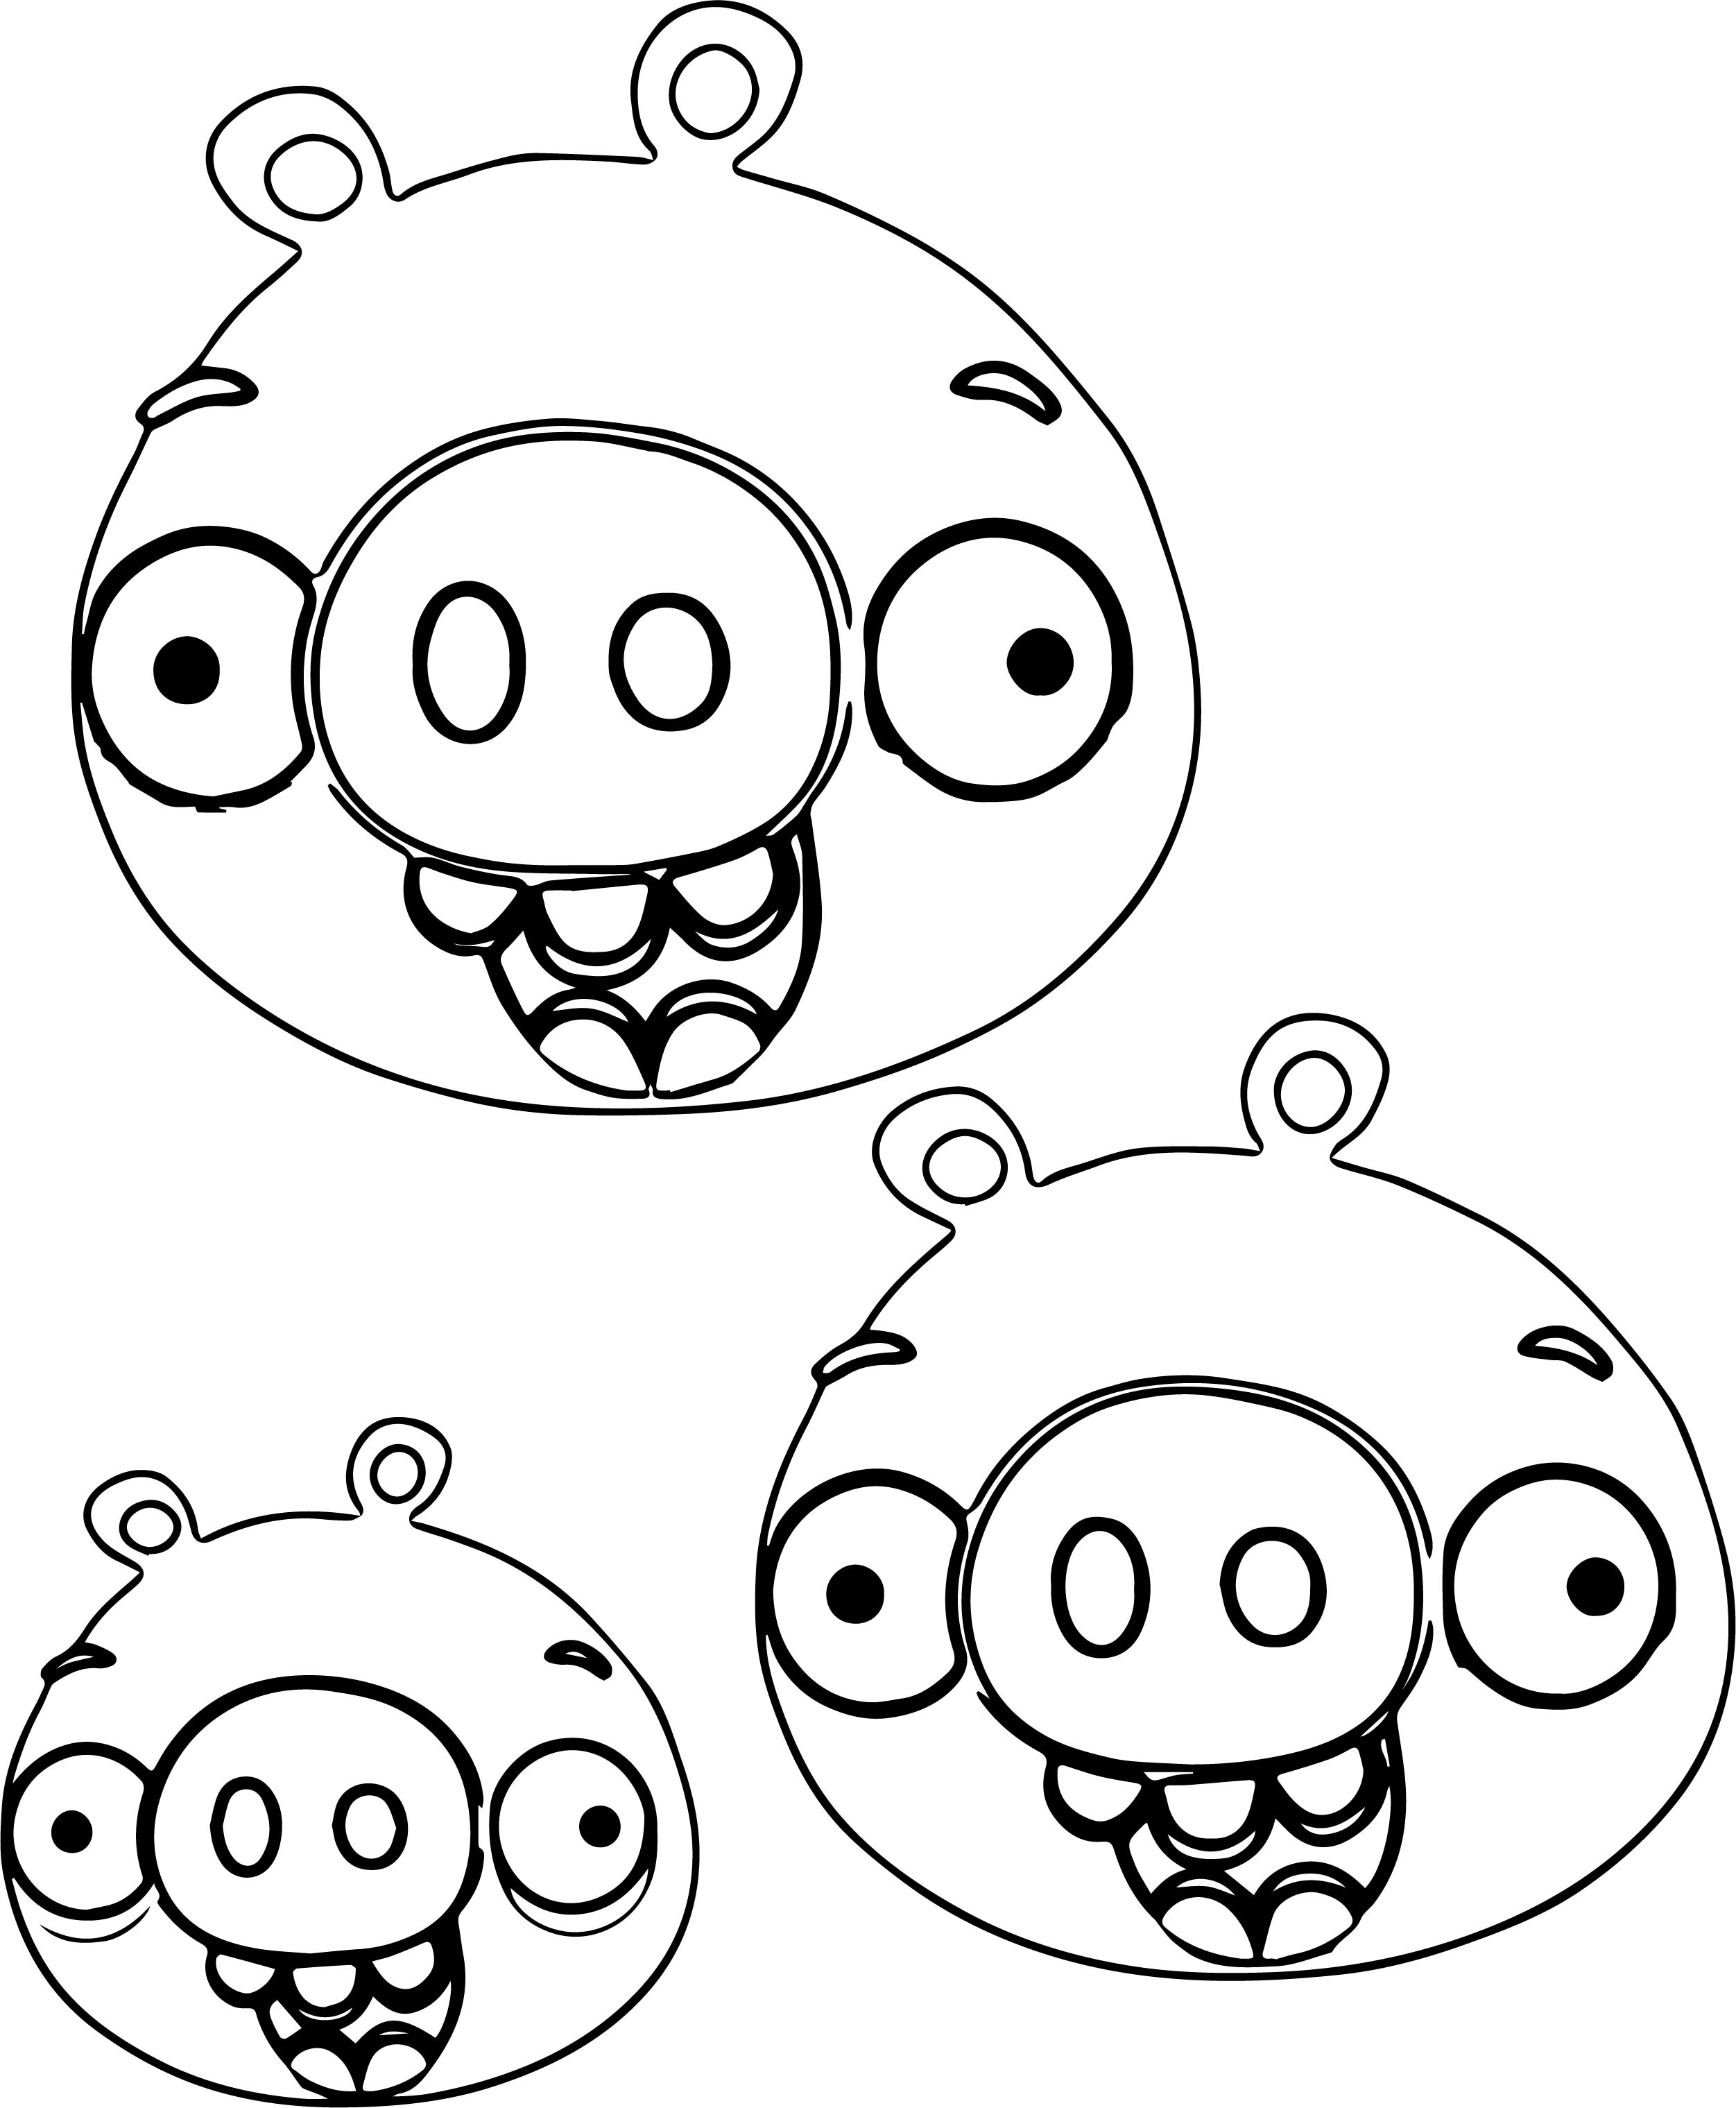 Angry Birds Three Pig Heads Coloring Page